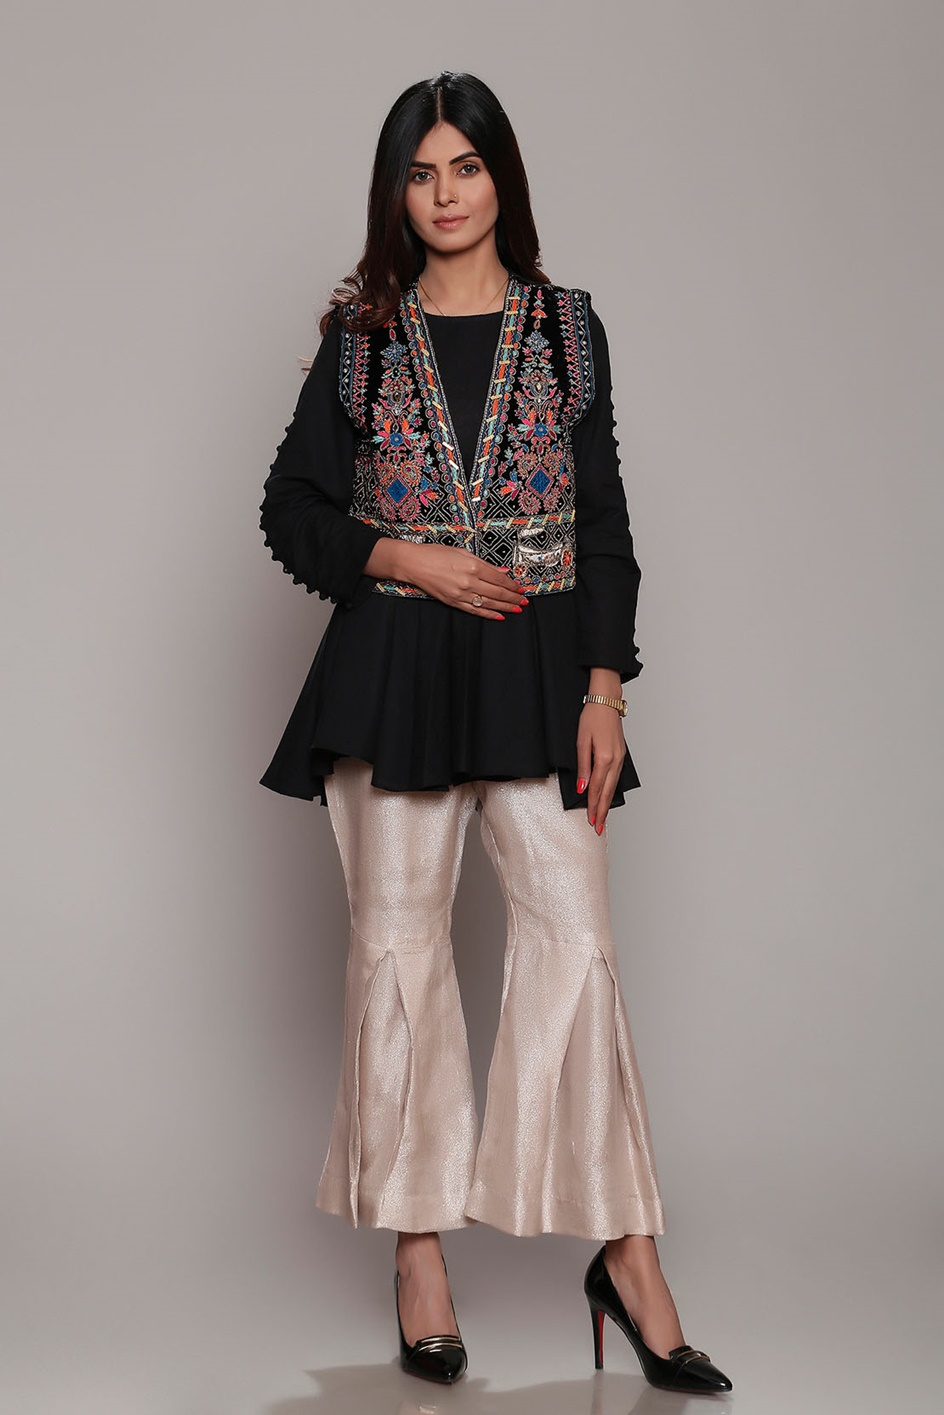 Amazing Dresses Fashion For Girls Looking Design 2020